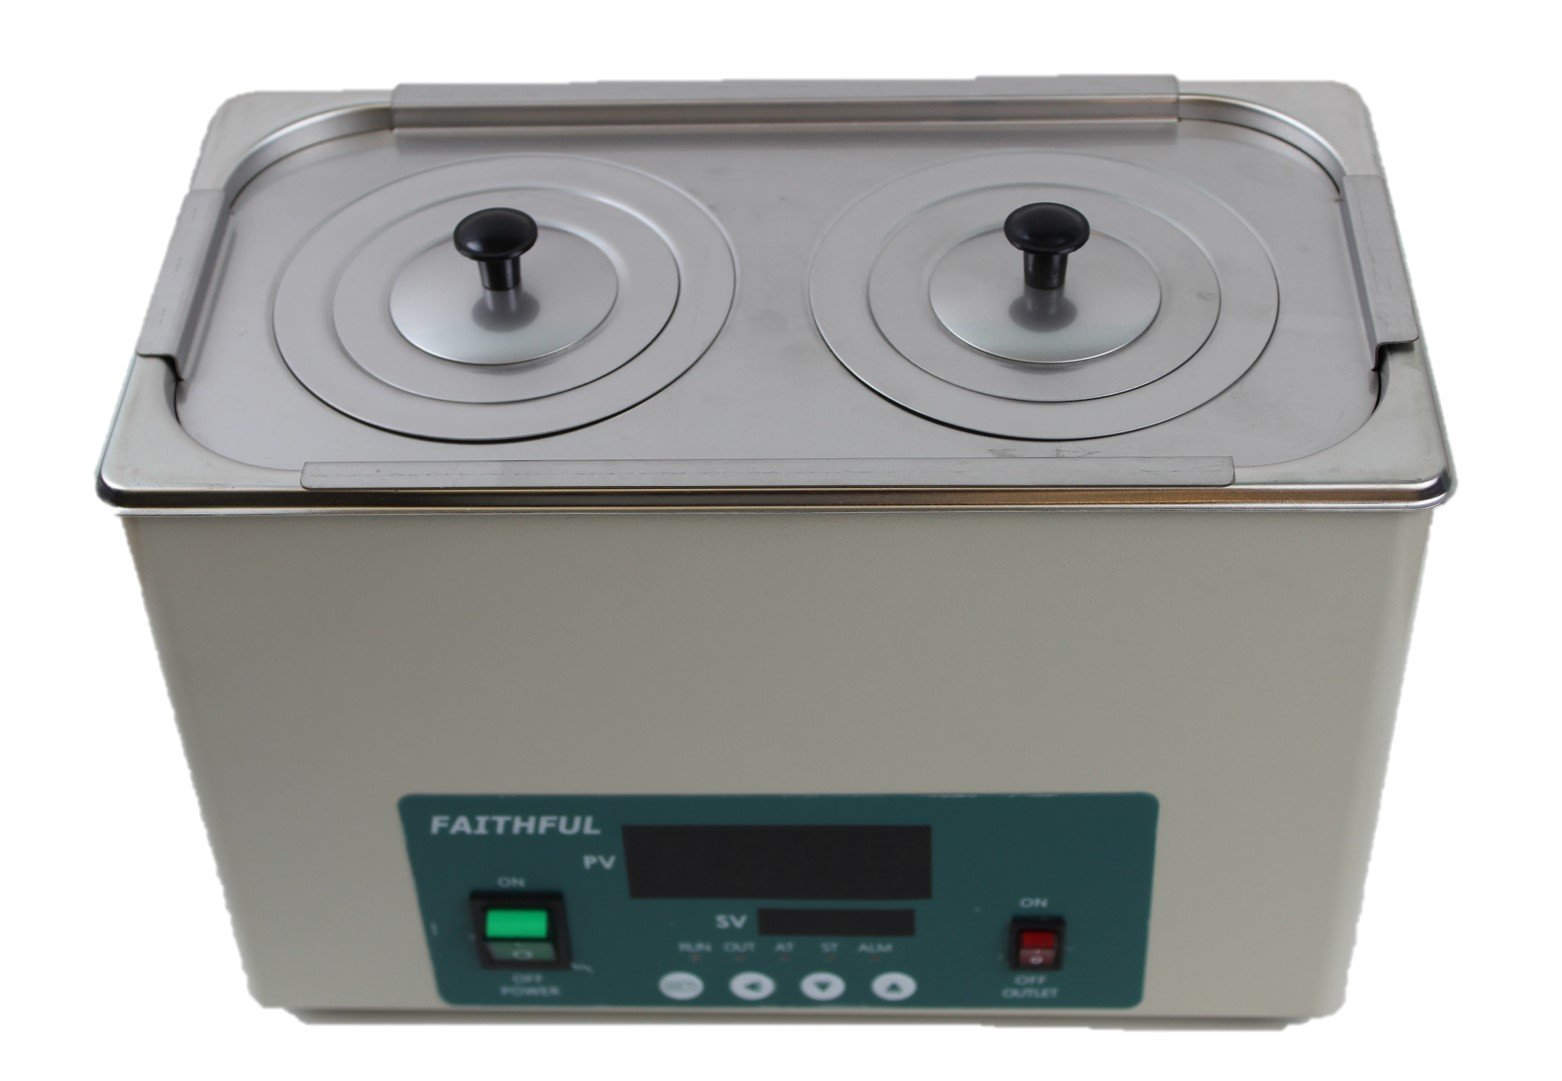 Faithful Digital Thermostatic Water Bath, 1 Chamber with 2 Openings, 110V